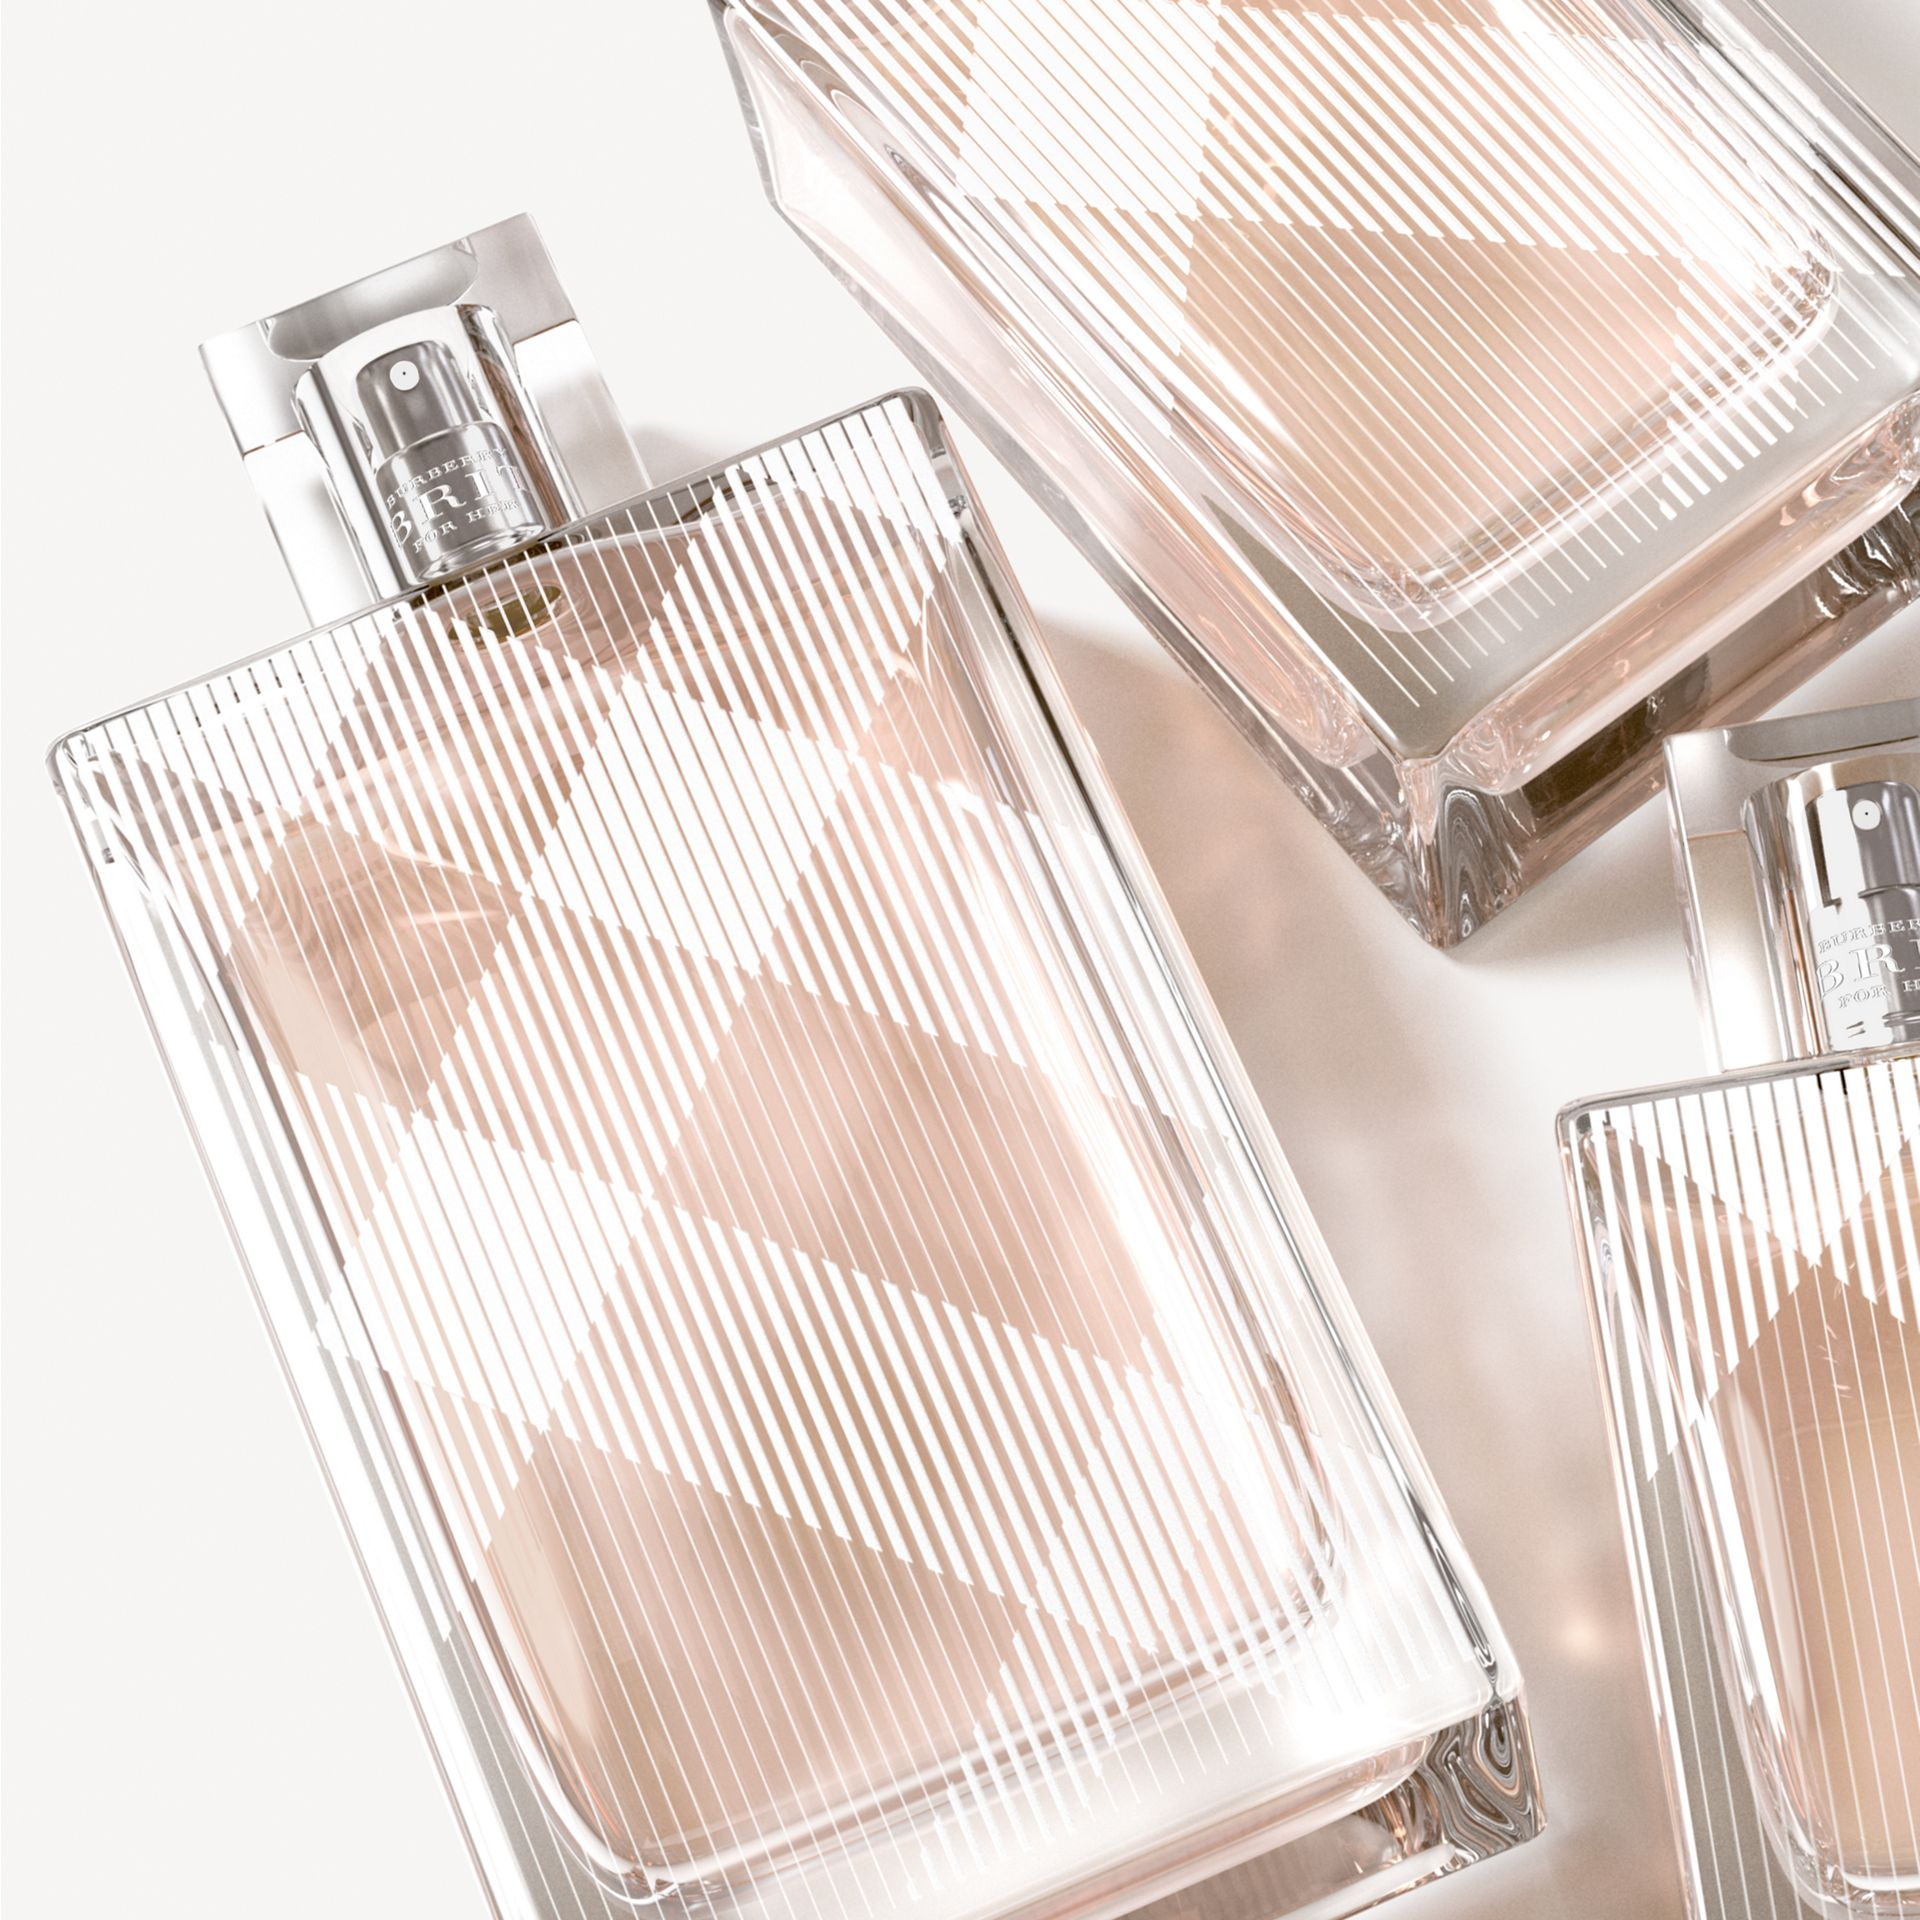 Burberry Brit For Her Eau de Toilette 100ml - gallery image 2